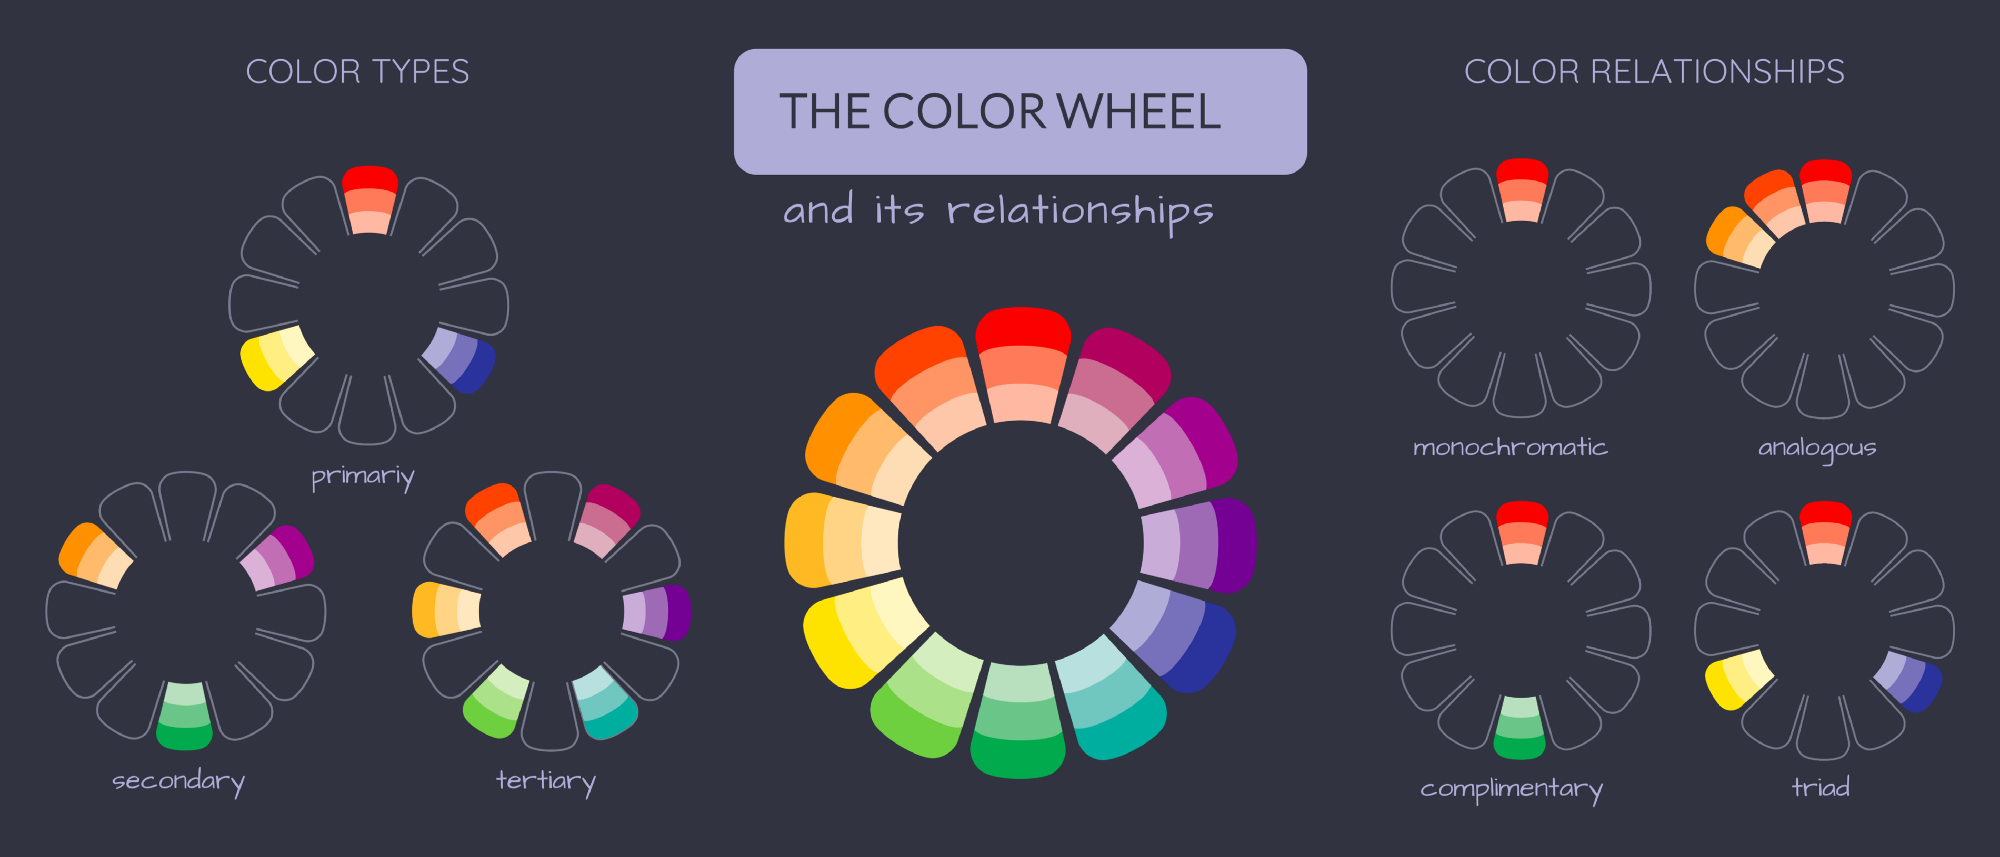 This Wheel Is Composed Of Primary Colors Secondary The Result Mixing Ones And Mix Those Two Categories Tertiary